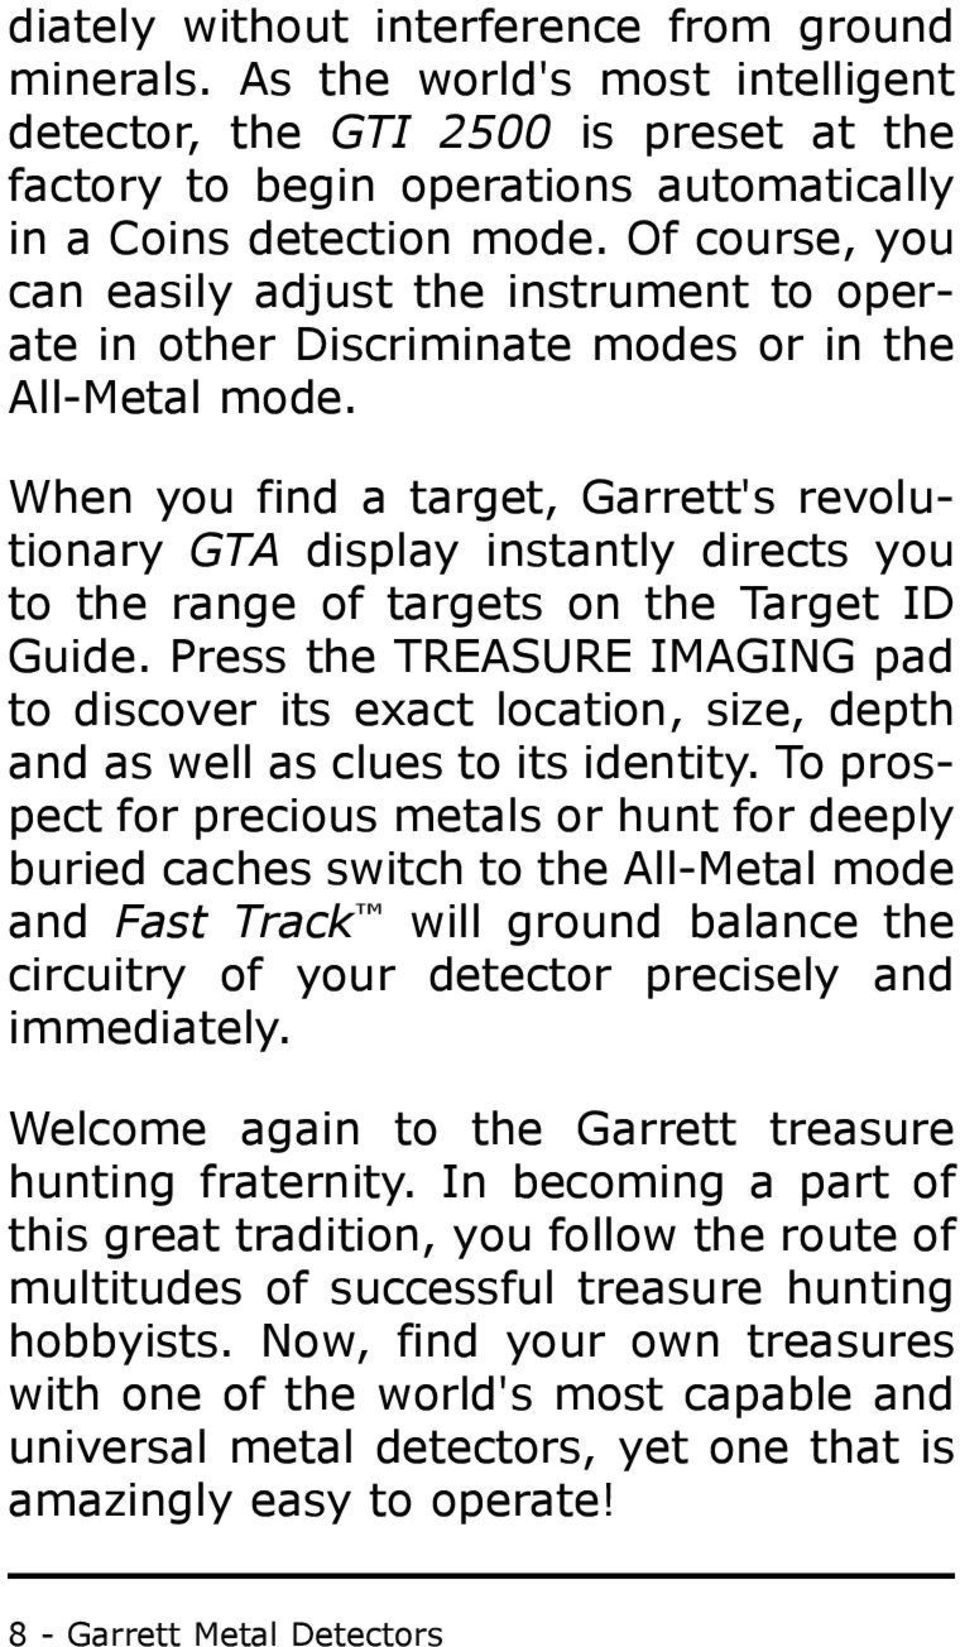 Special Notice Graphic Target Imaging Pdf Metal Detector Schematicmetal Schematic Pdfmetal Pinpointer 8 Garrett Detectors When You Find A Garretts Revolutionary Gta Display Instantly Directs To The Range